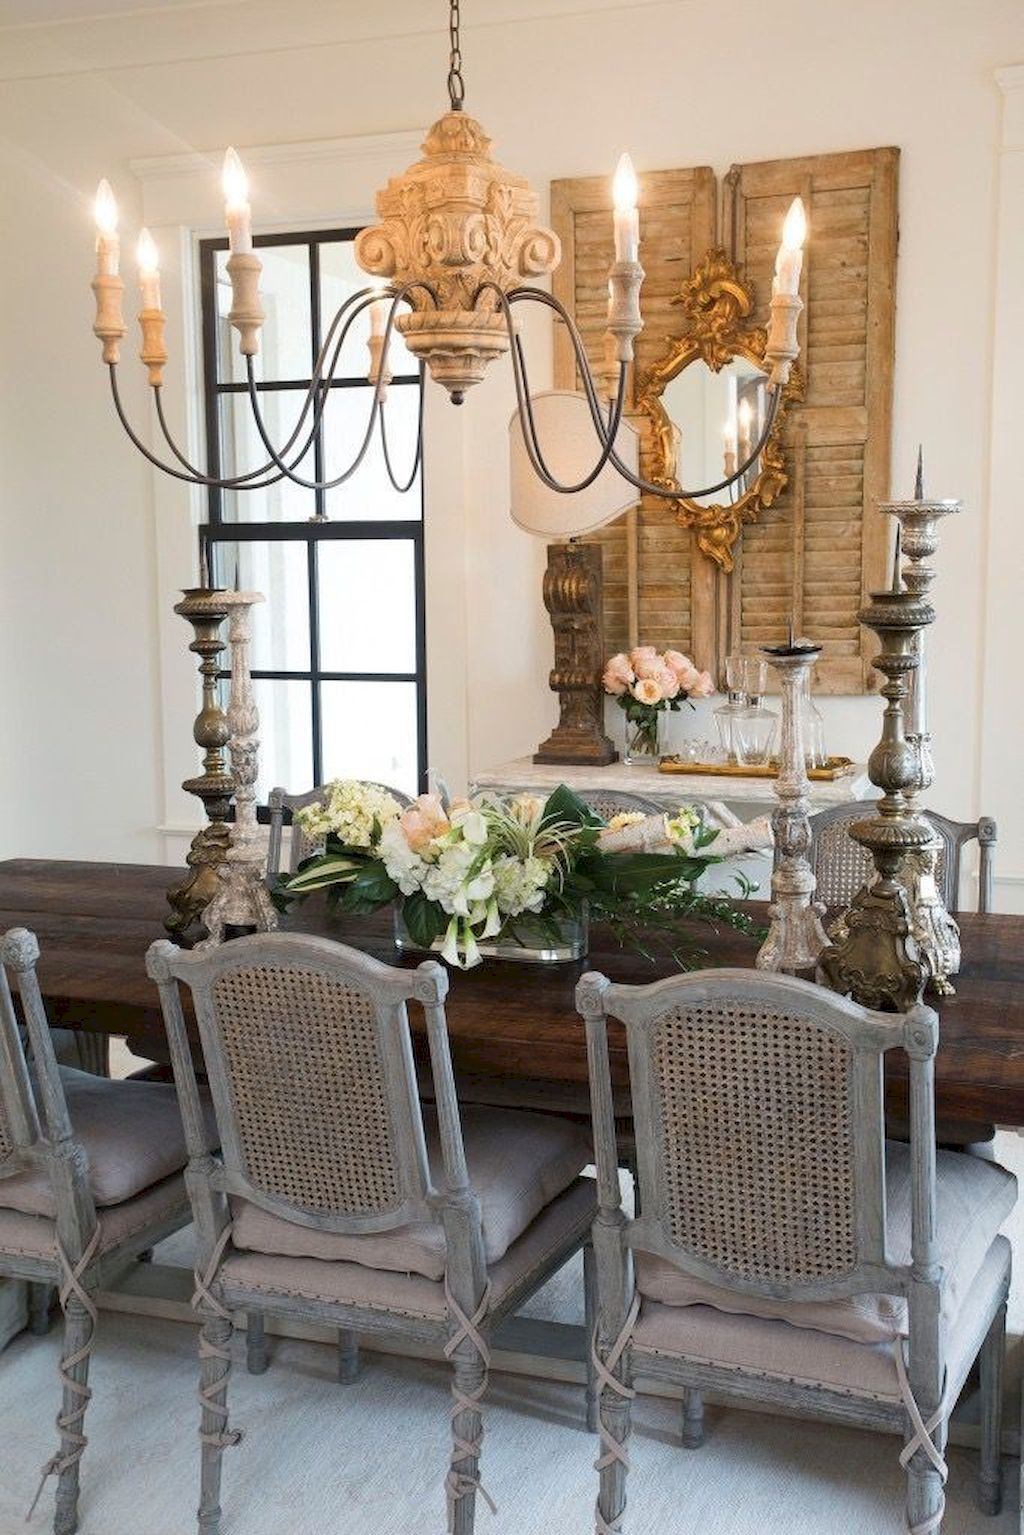 55 Modern French Country Dining Room Table Decor Ideas | Dining room ...